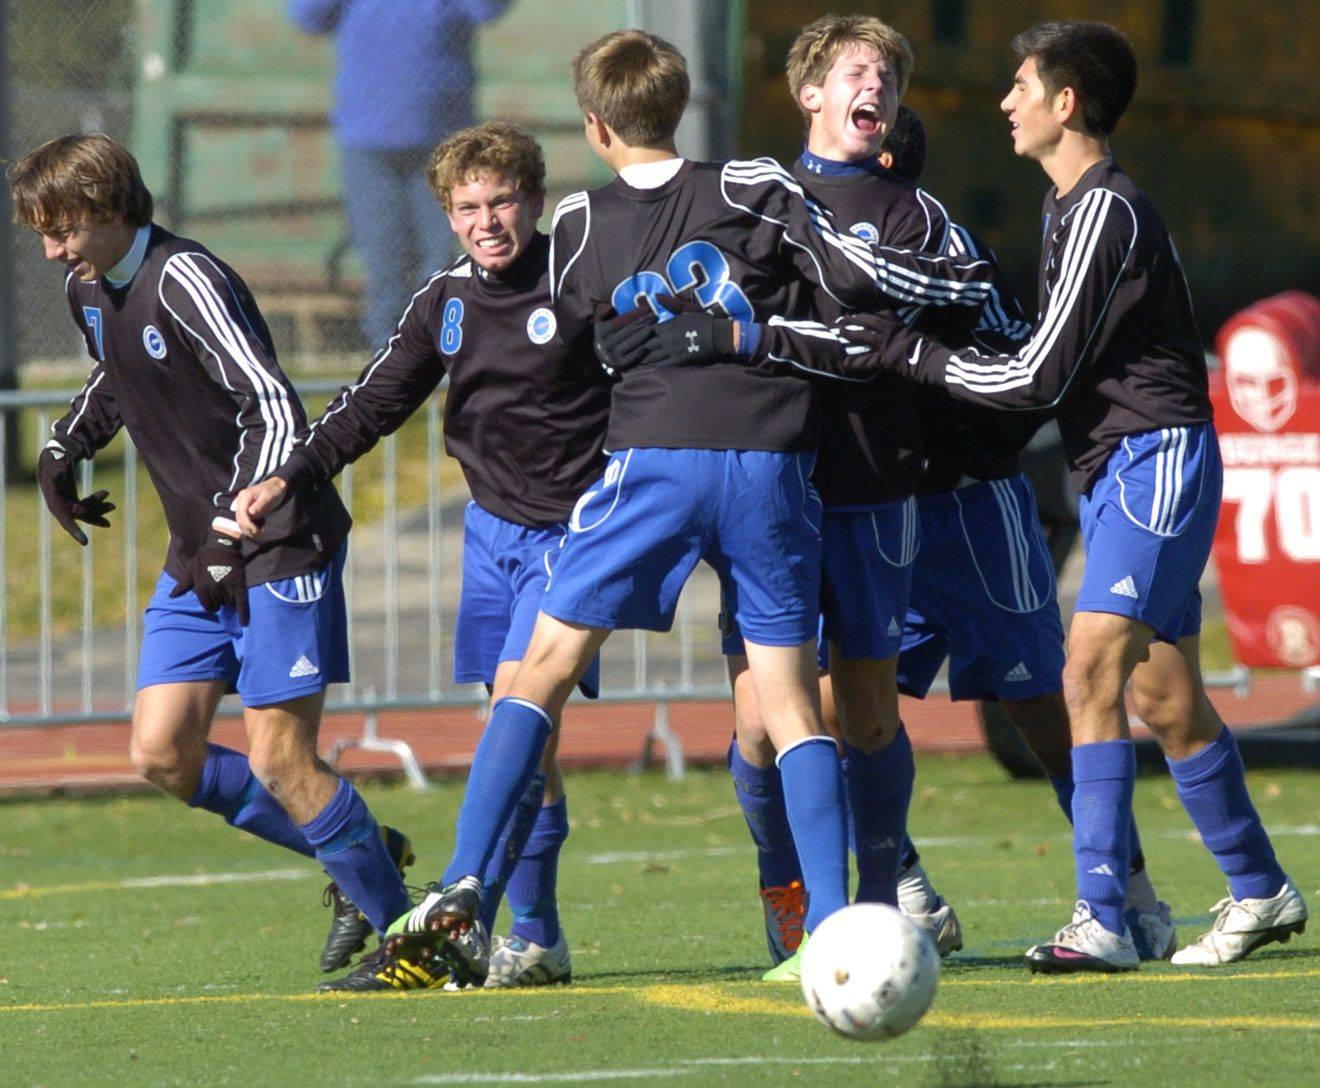 Burlington Central celebrates their goal during Friday's Class 2A state boys soccer semifinal.